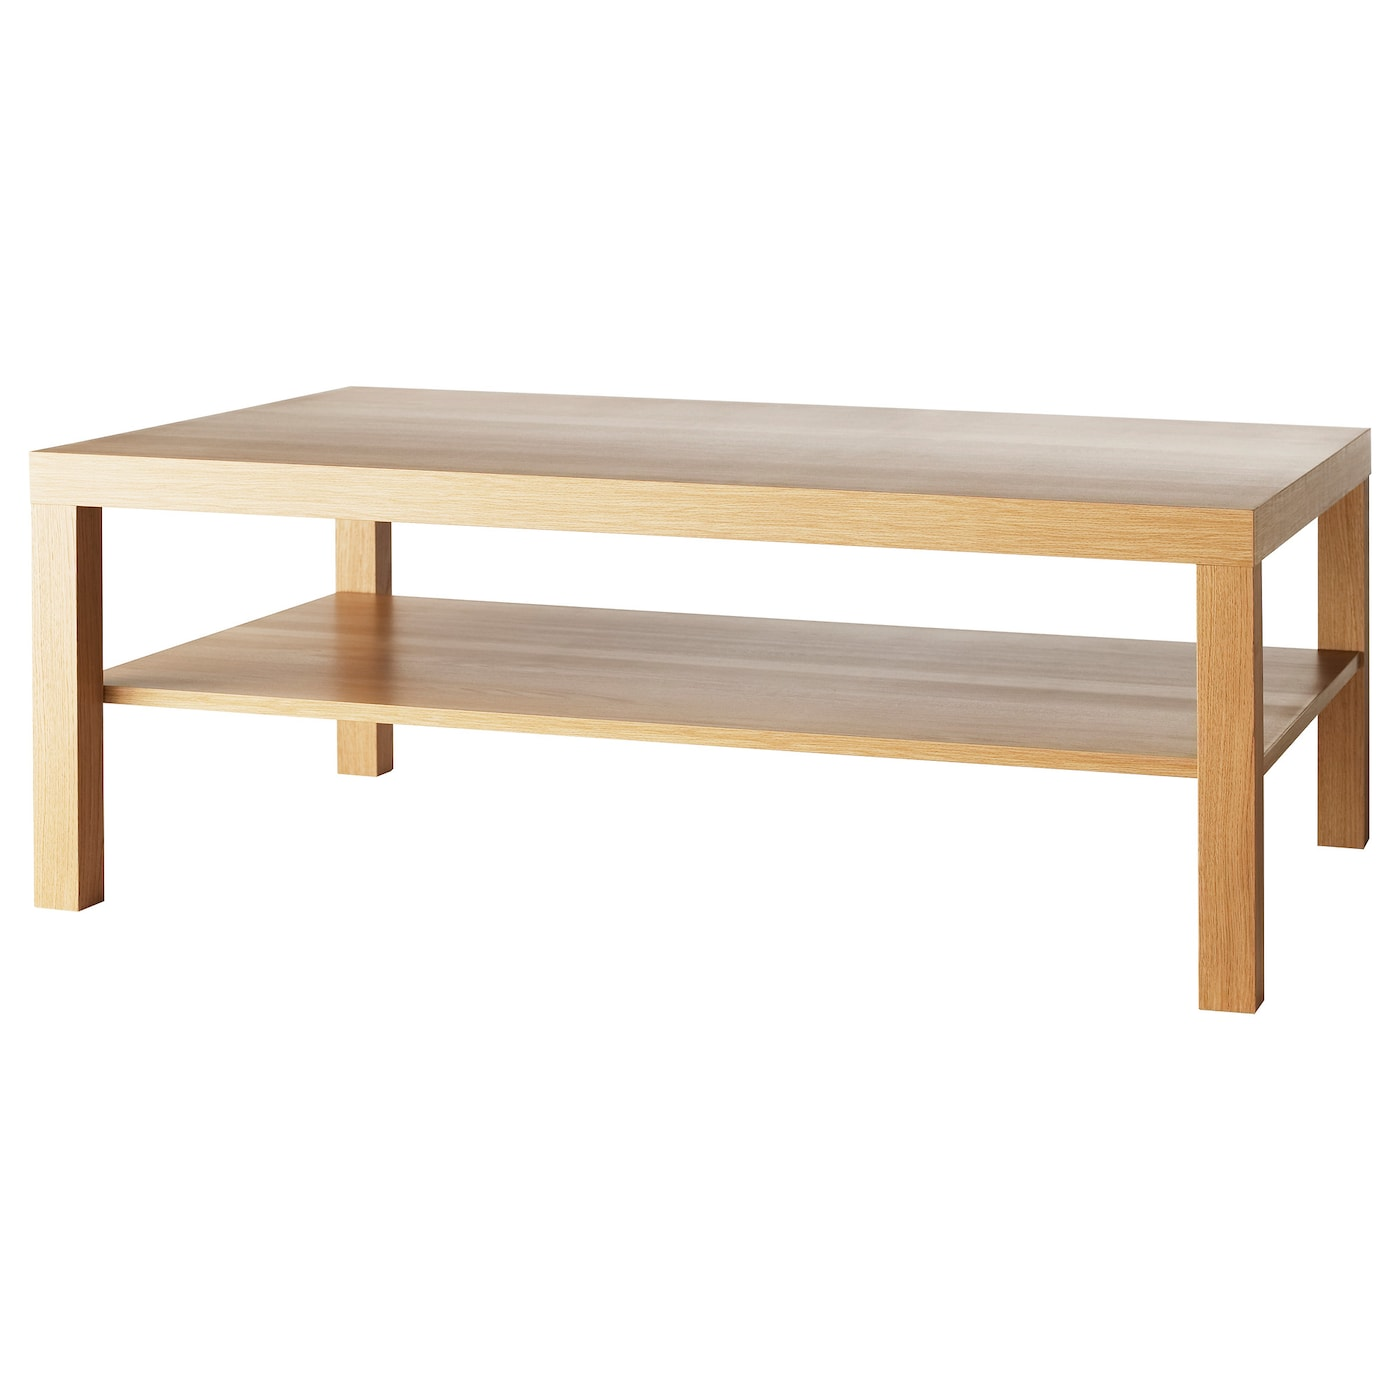 lack coffee table oak effect 118 x 78 cm ikea. Black Bedroom Furniture Sets. Home Design Ideas